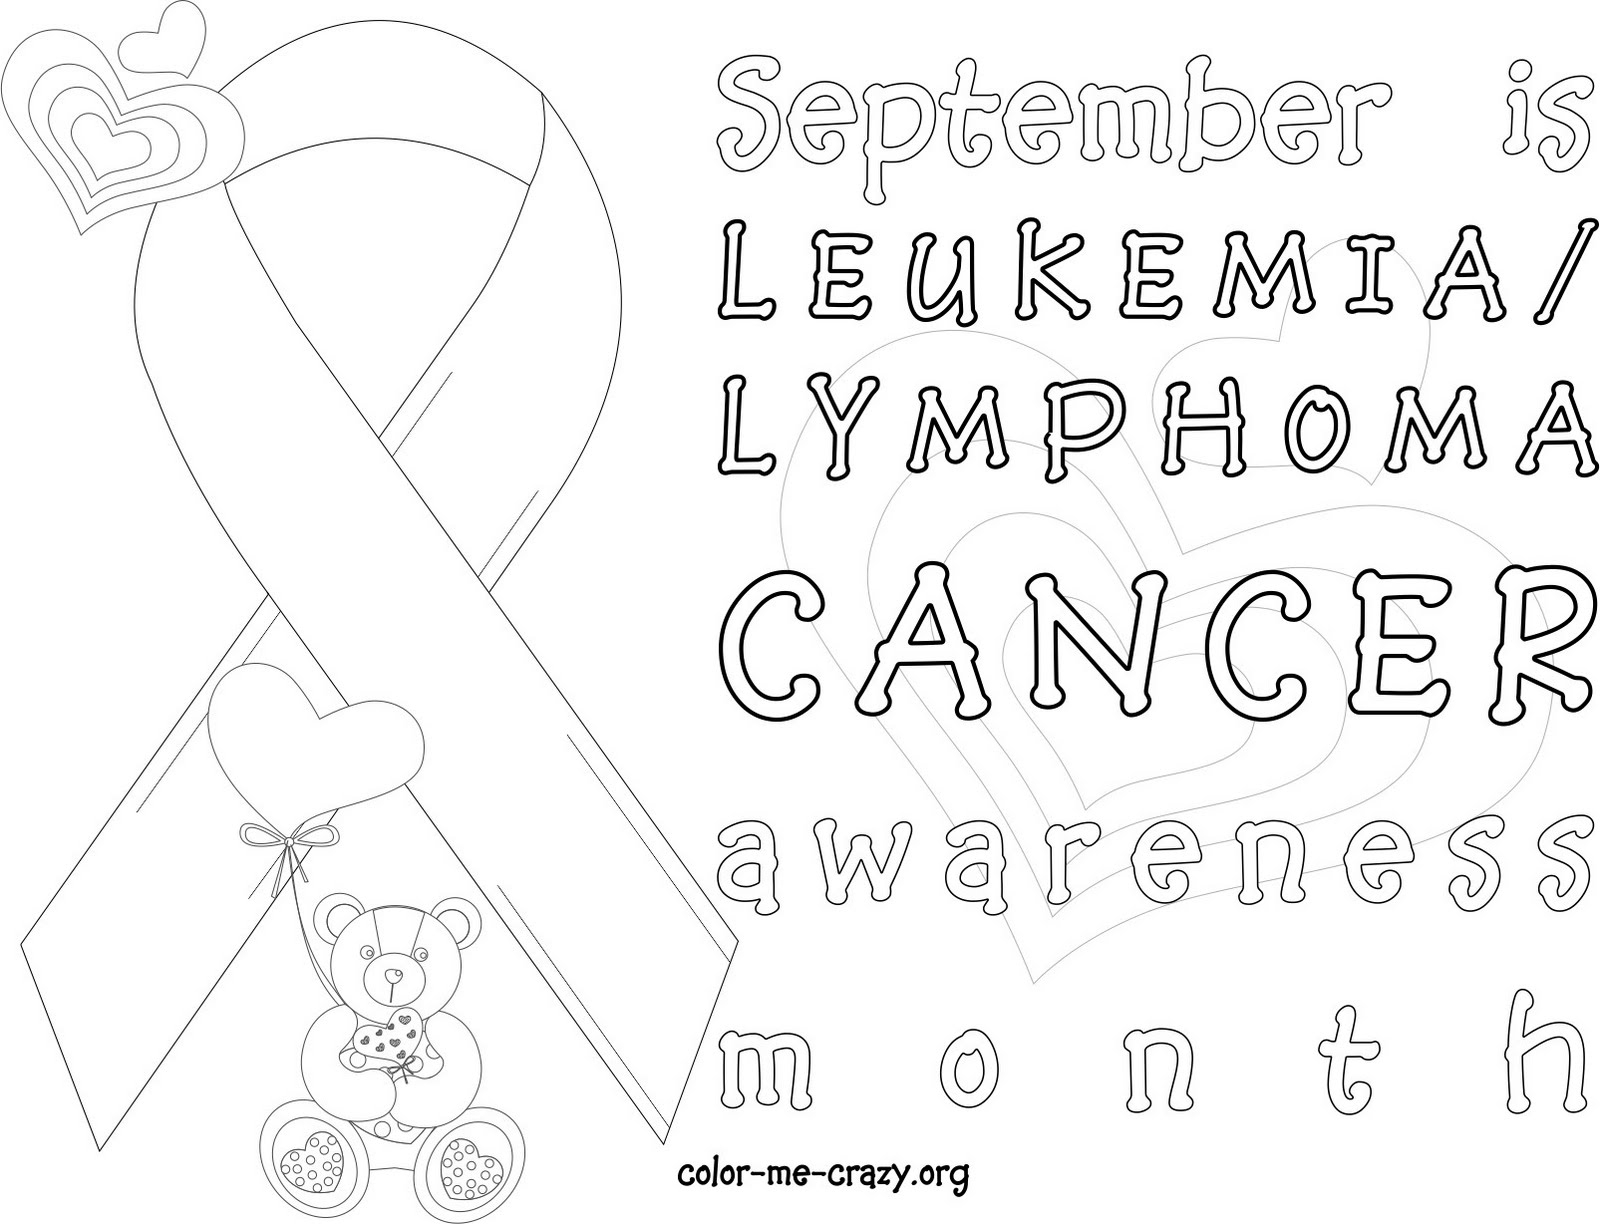 cancer awareness coloring pages Collection-or me crazy tributeitemsml 3-t